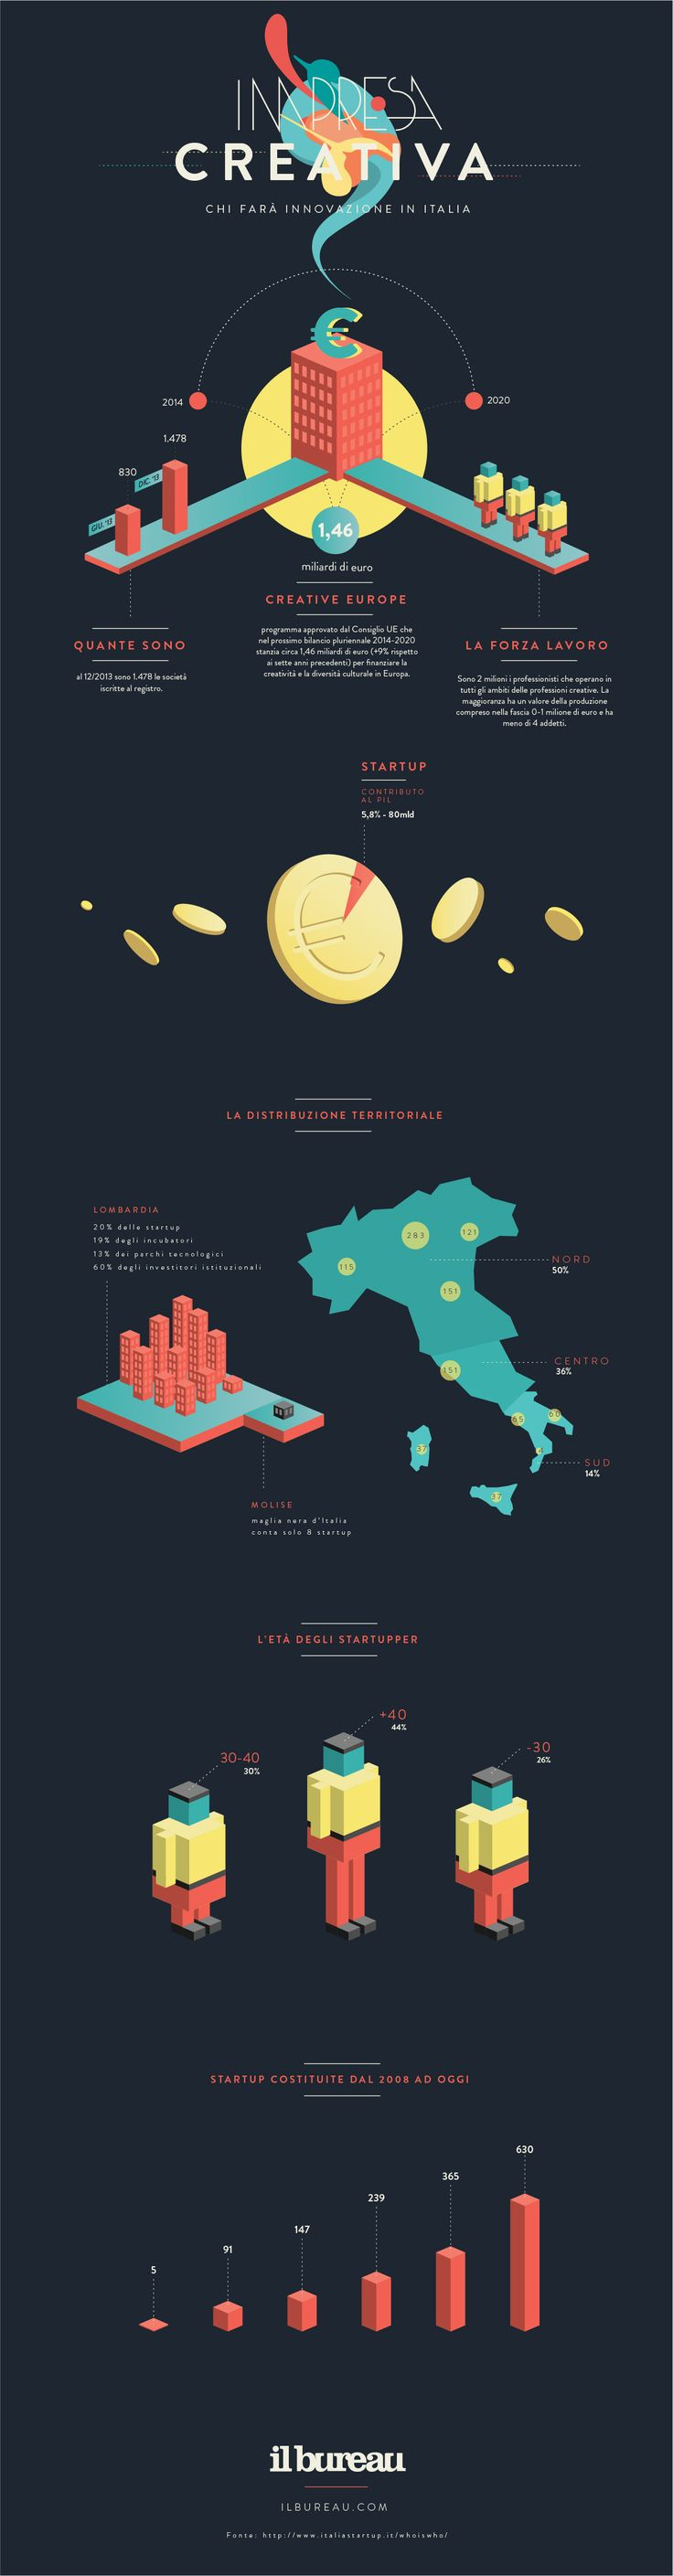 Start-up e impresa creativa in Italia